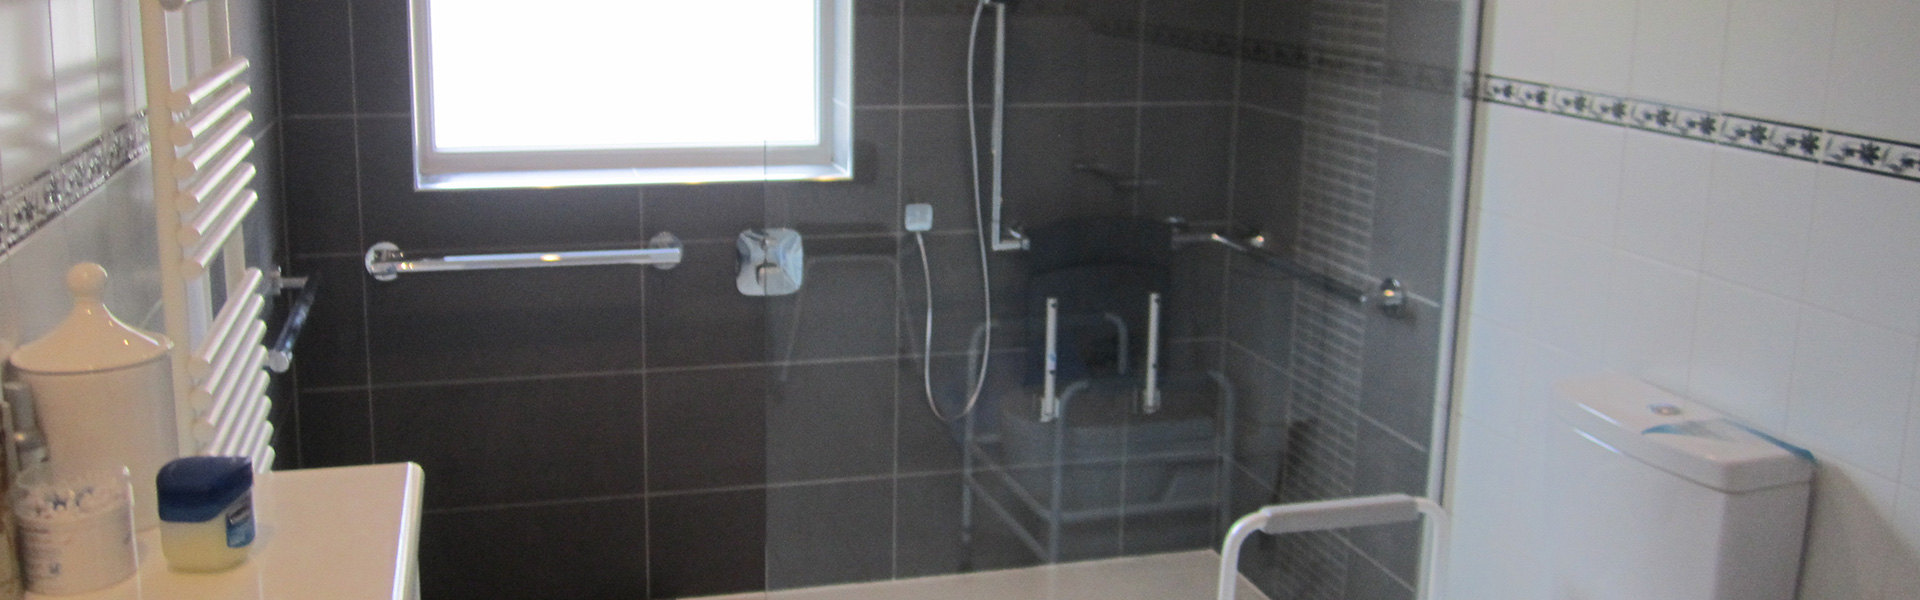 Easy Access – walk in shower installation